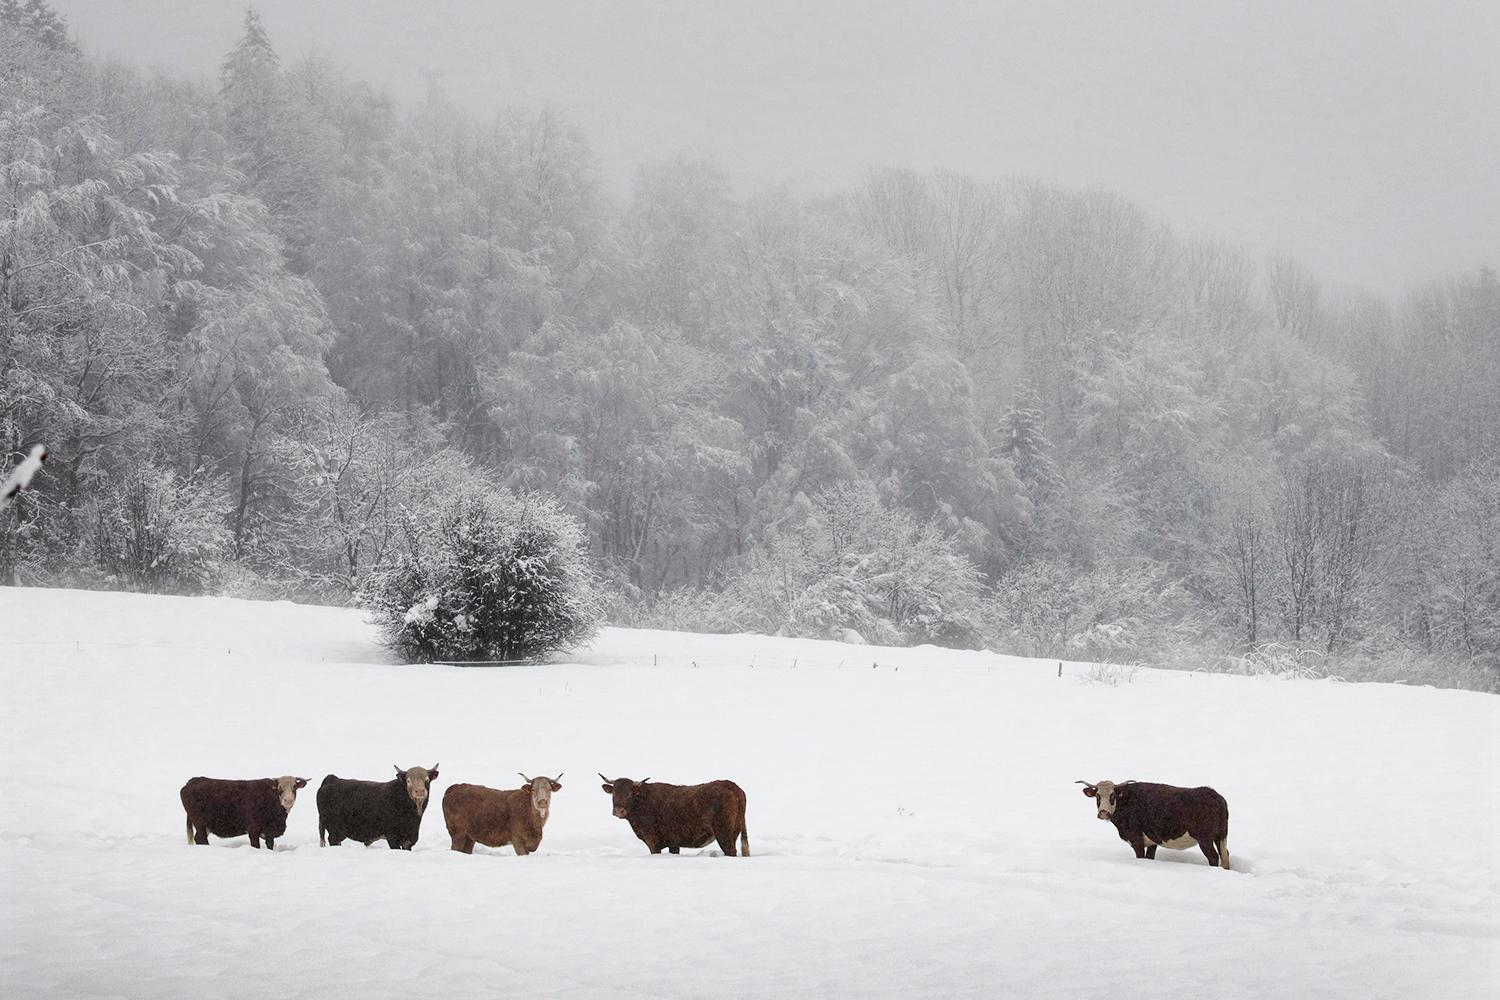 Cows in the snow by Christophe Jacrot - winter landscape and animal photography